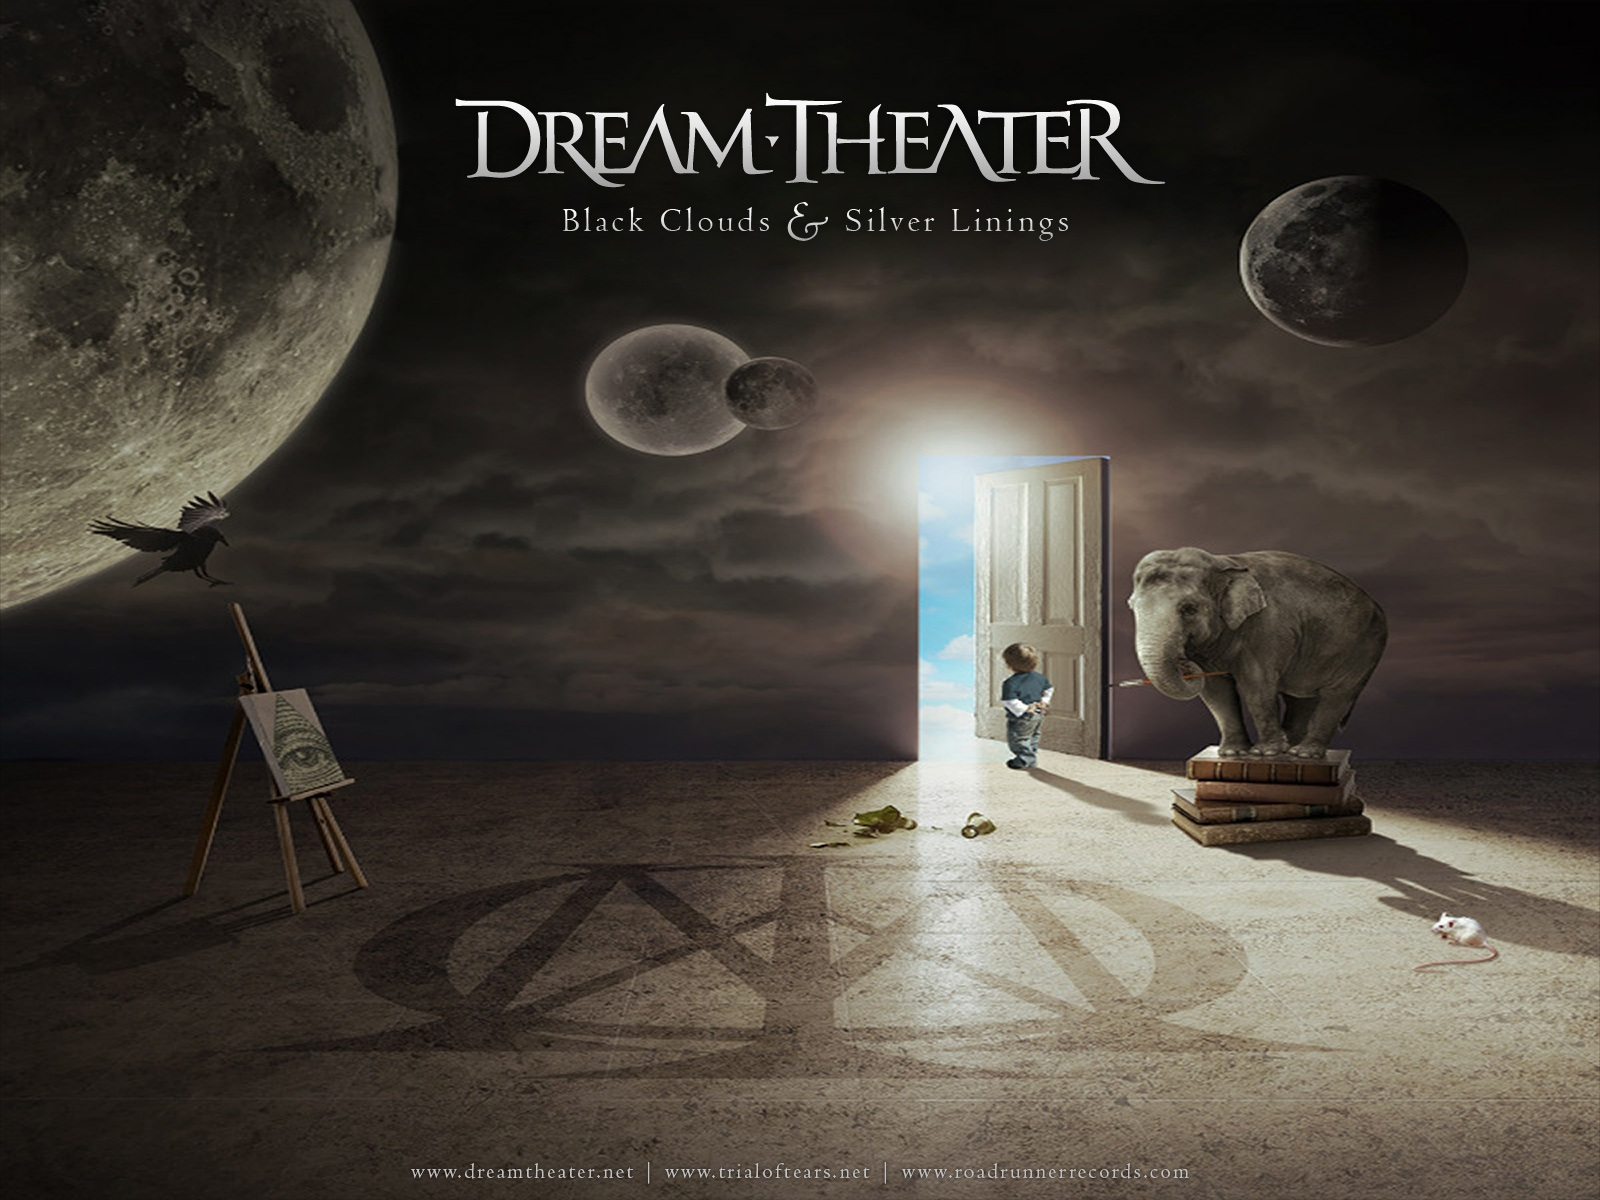 Best Of Dream Theater Wallpapers Hd For: Dream Theater Wallpaper